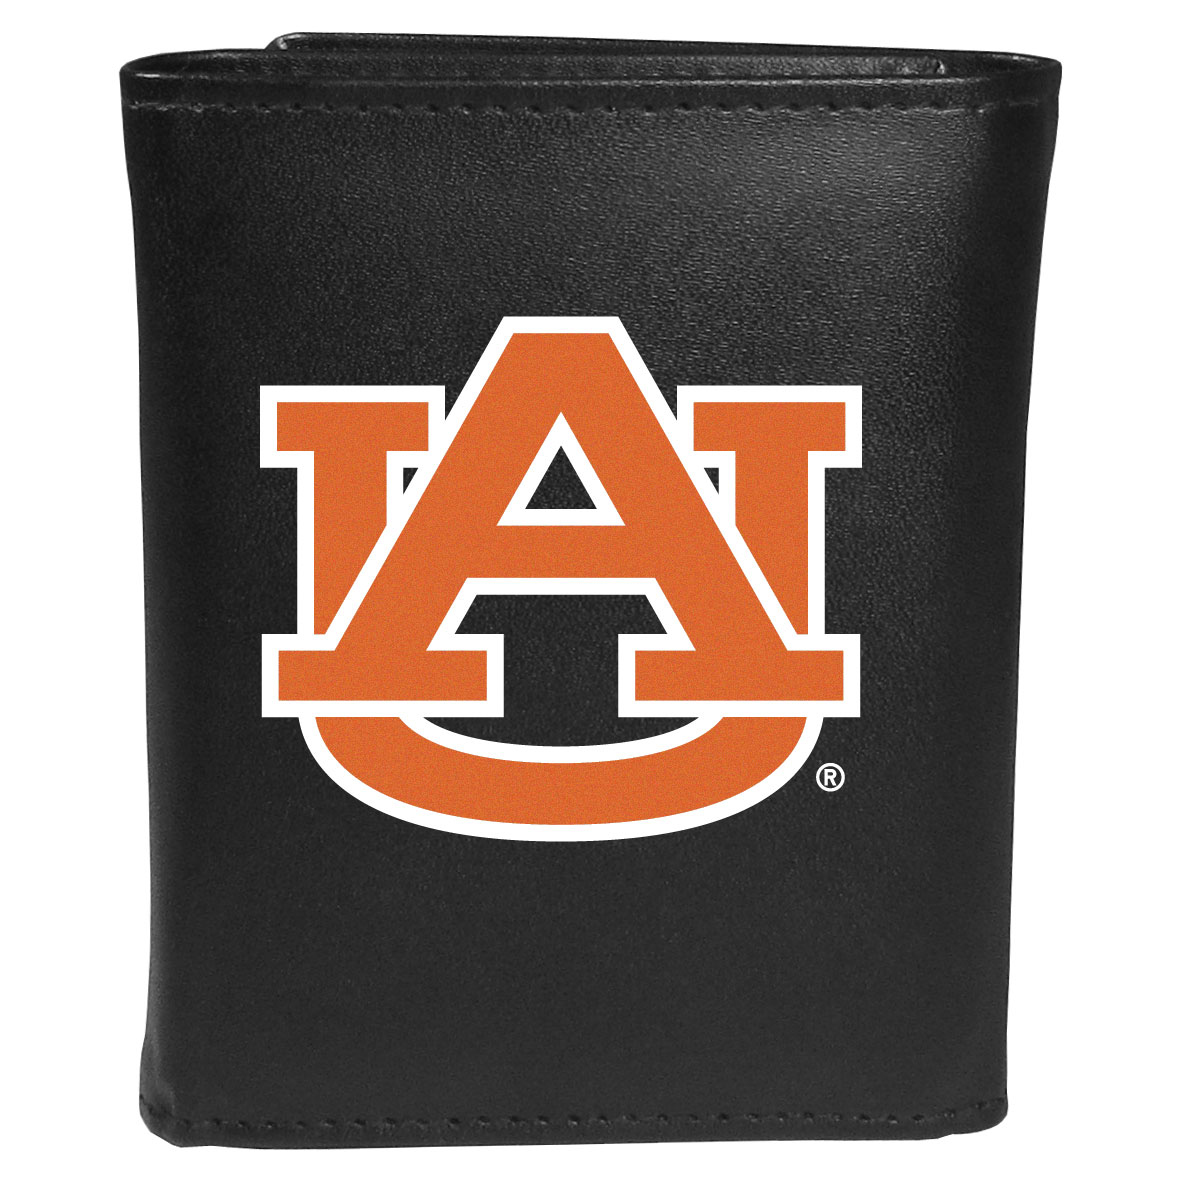 Auburn Tigers Leather Tri-fold Wallet, Large Logo - Our classic fine leather tri-fold wallet is meticulously crafted with genuine leather that will age beautifully so you will have a quality wallet for years to come. This is fan apparel at its finest. The wallet is packed with organizational  features; lots of credit card slots, large billfold pocket, and a window ID slot. The front of the wallet features an extra large Auburn Tigers printed logo.